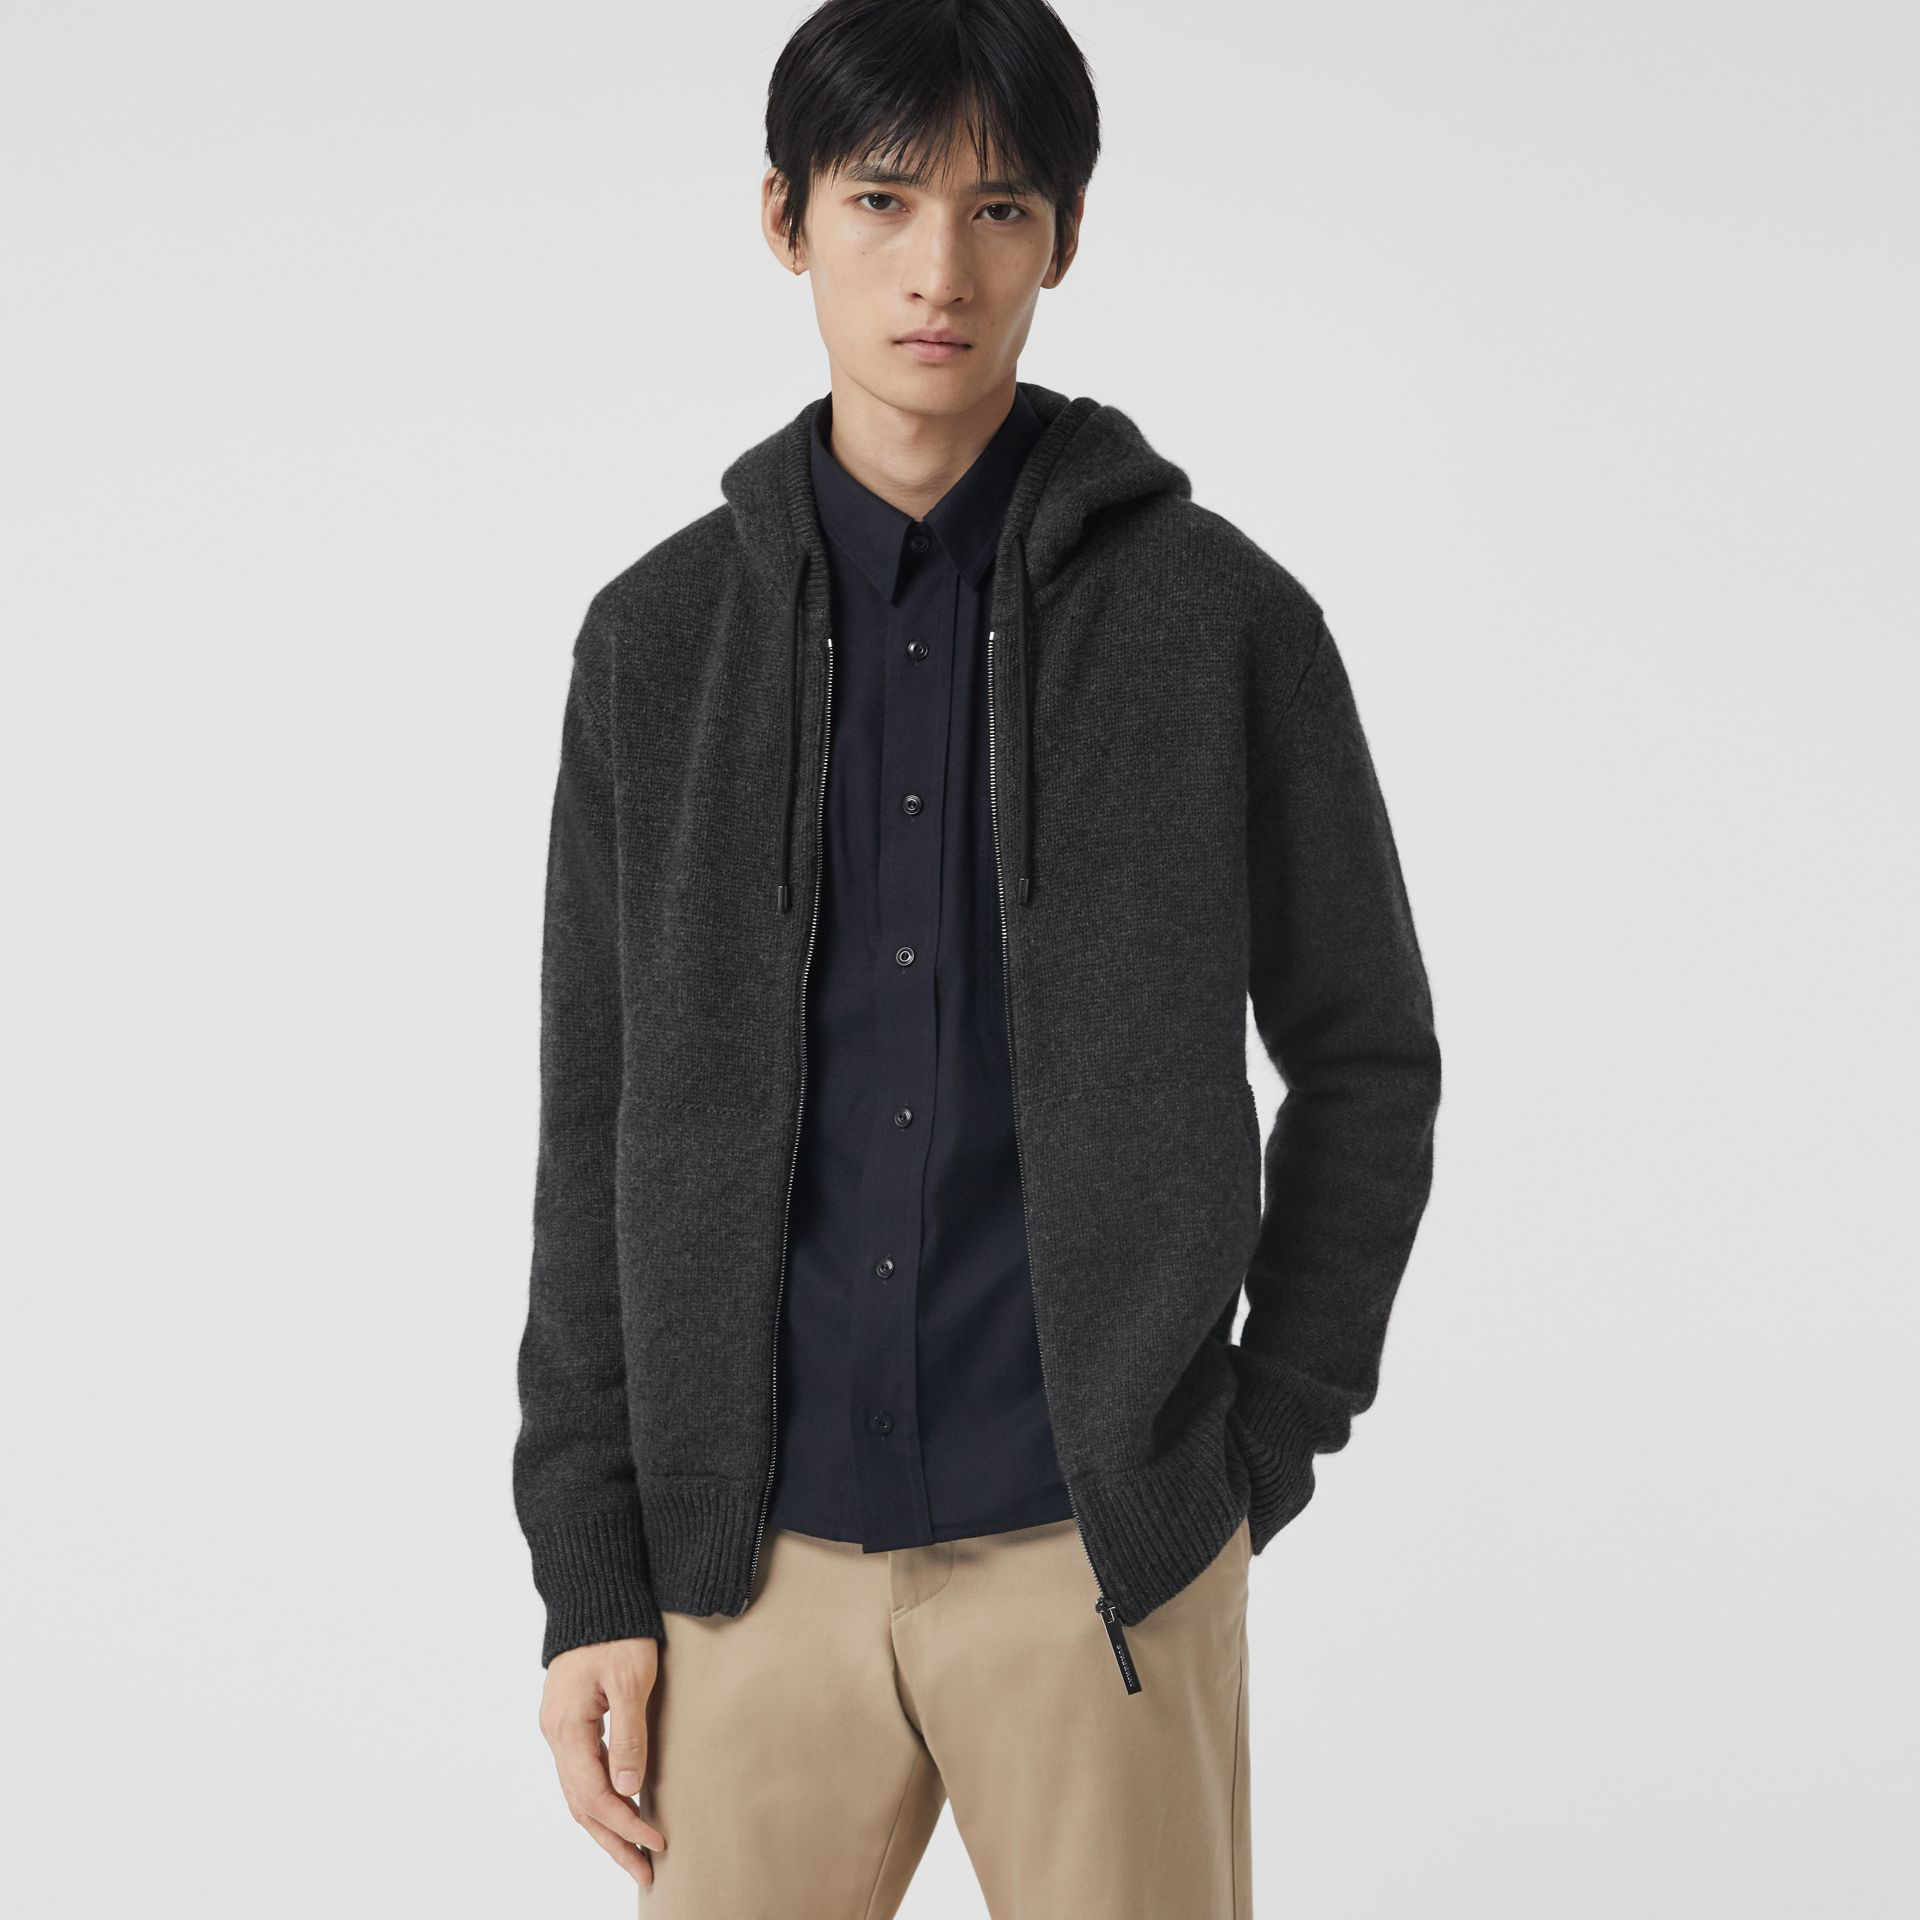 Cashmere Hooded Top in Charcoal Melange - Men | Burberry - gallery image 4